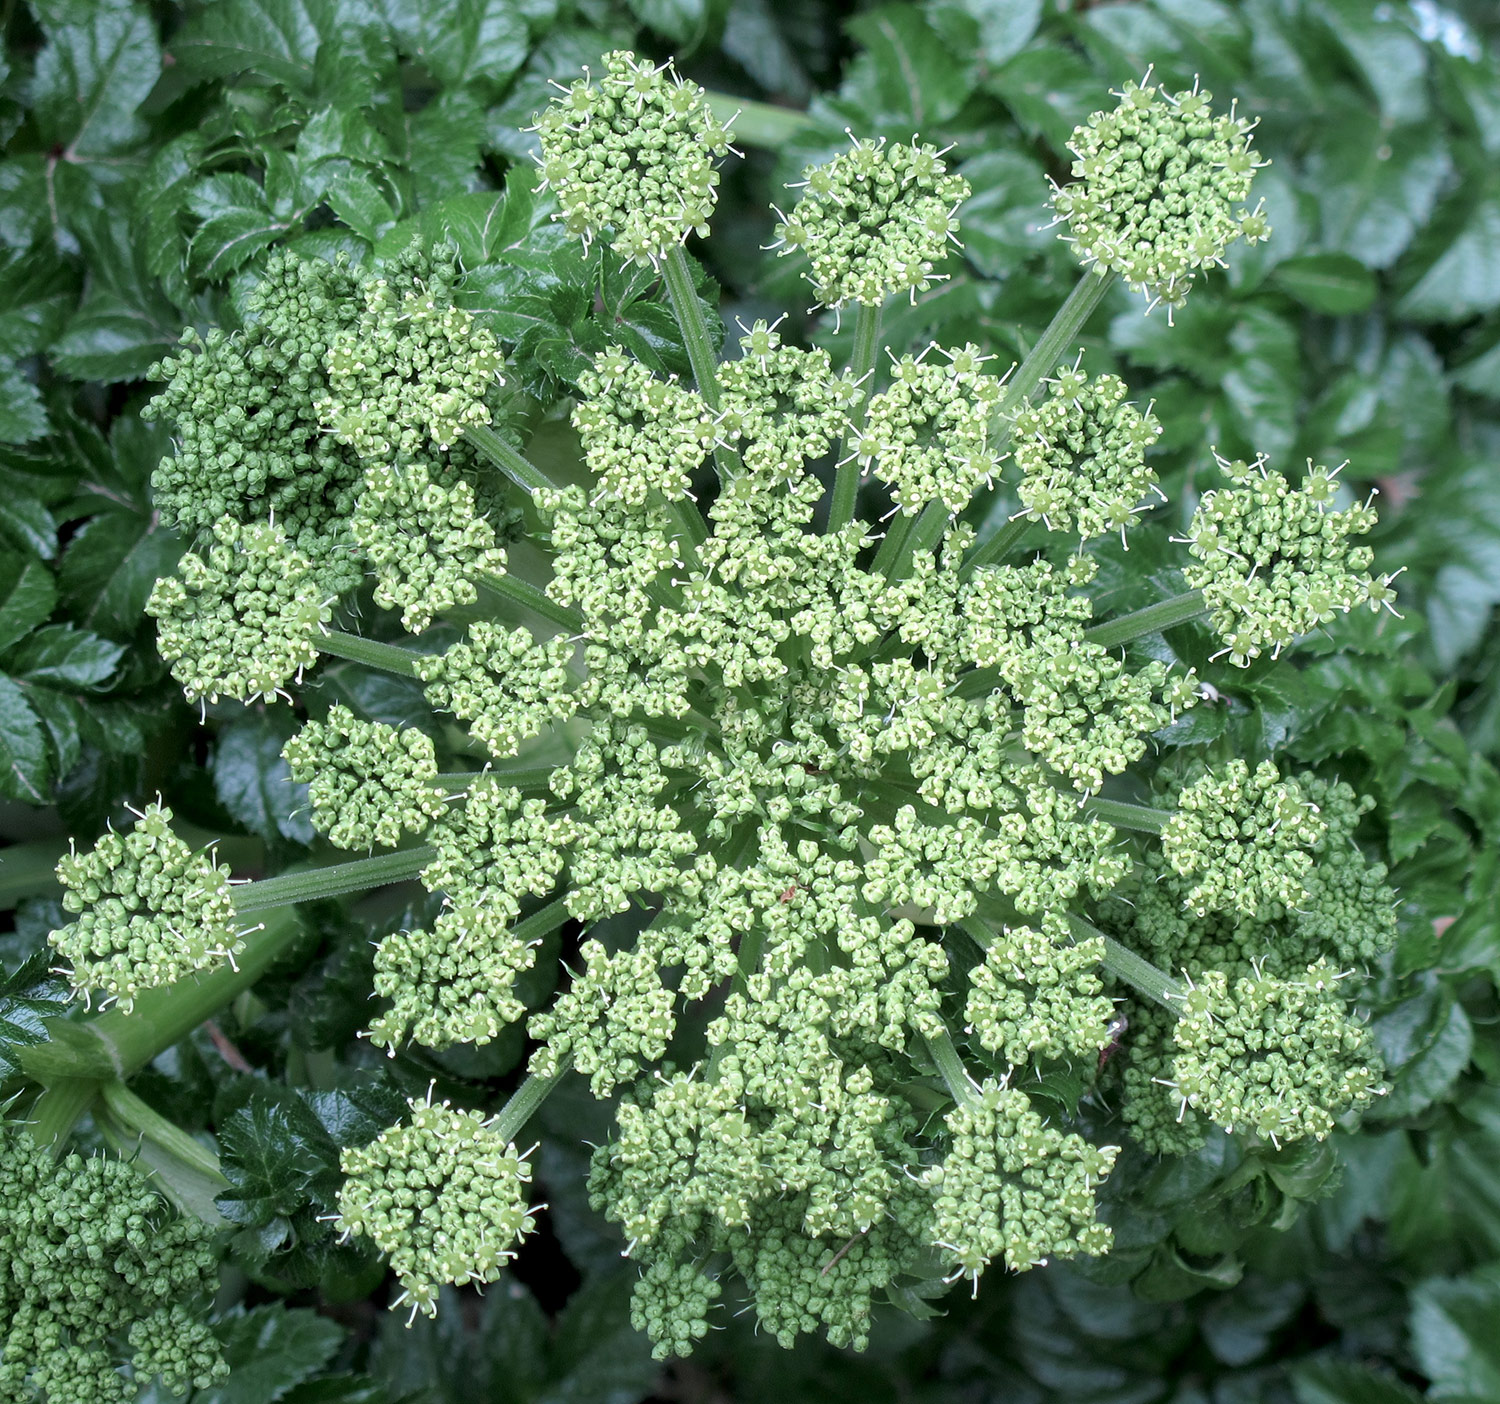 Angelica-pachycarpa-11-